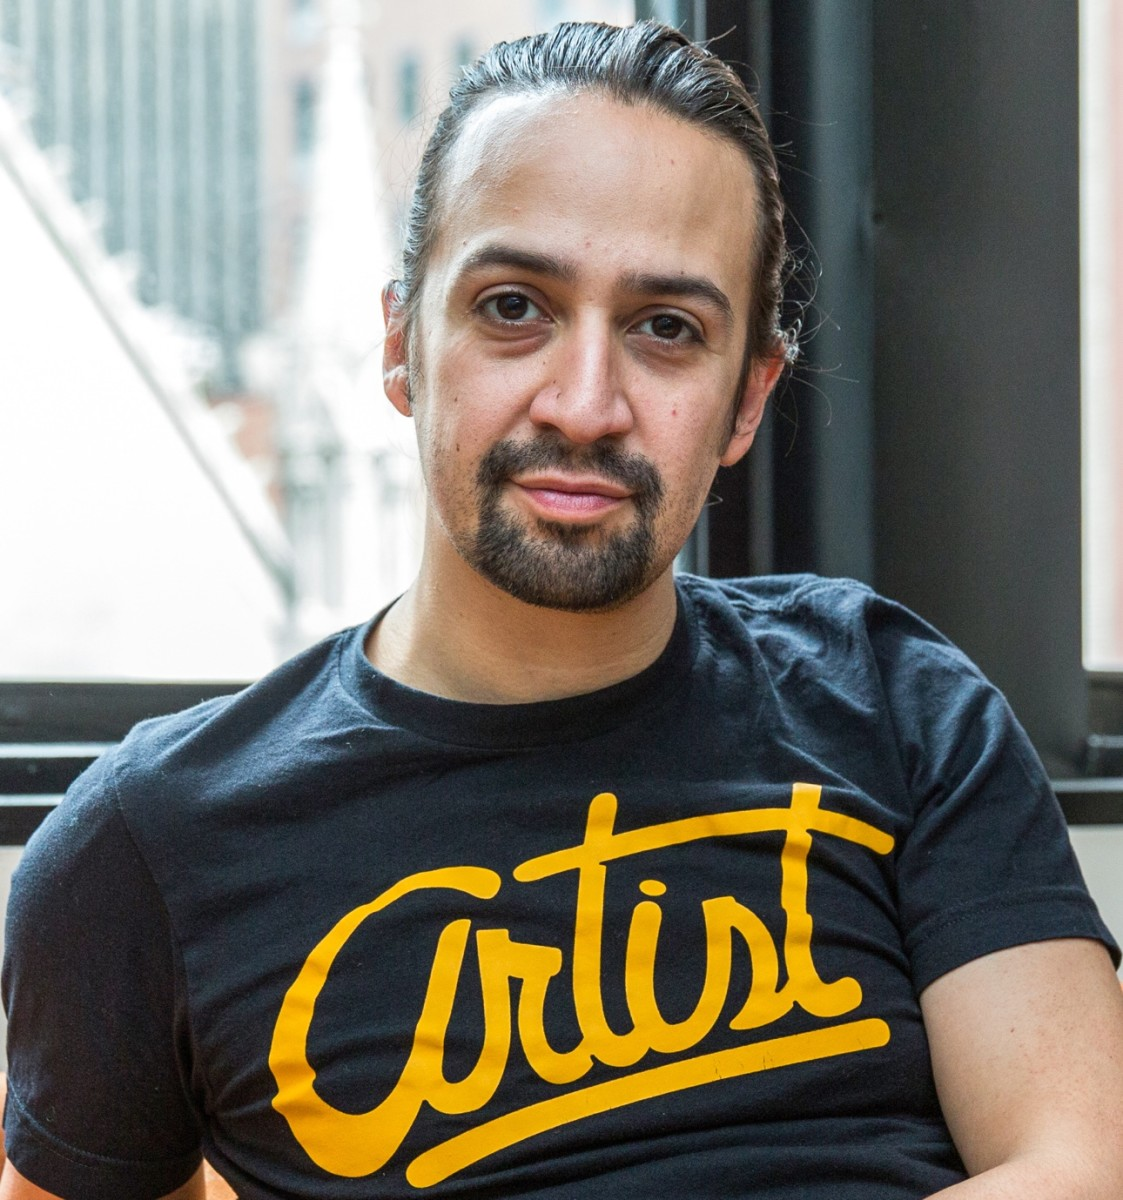 Lin-Manuel Miranda Photo via Wikicommons